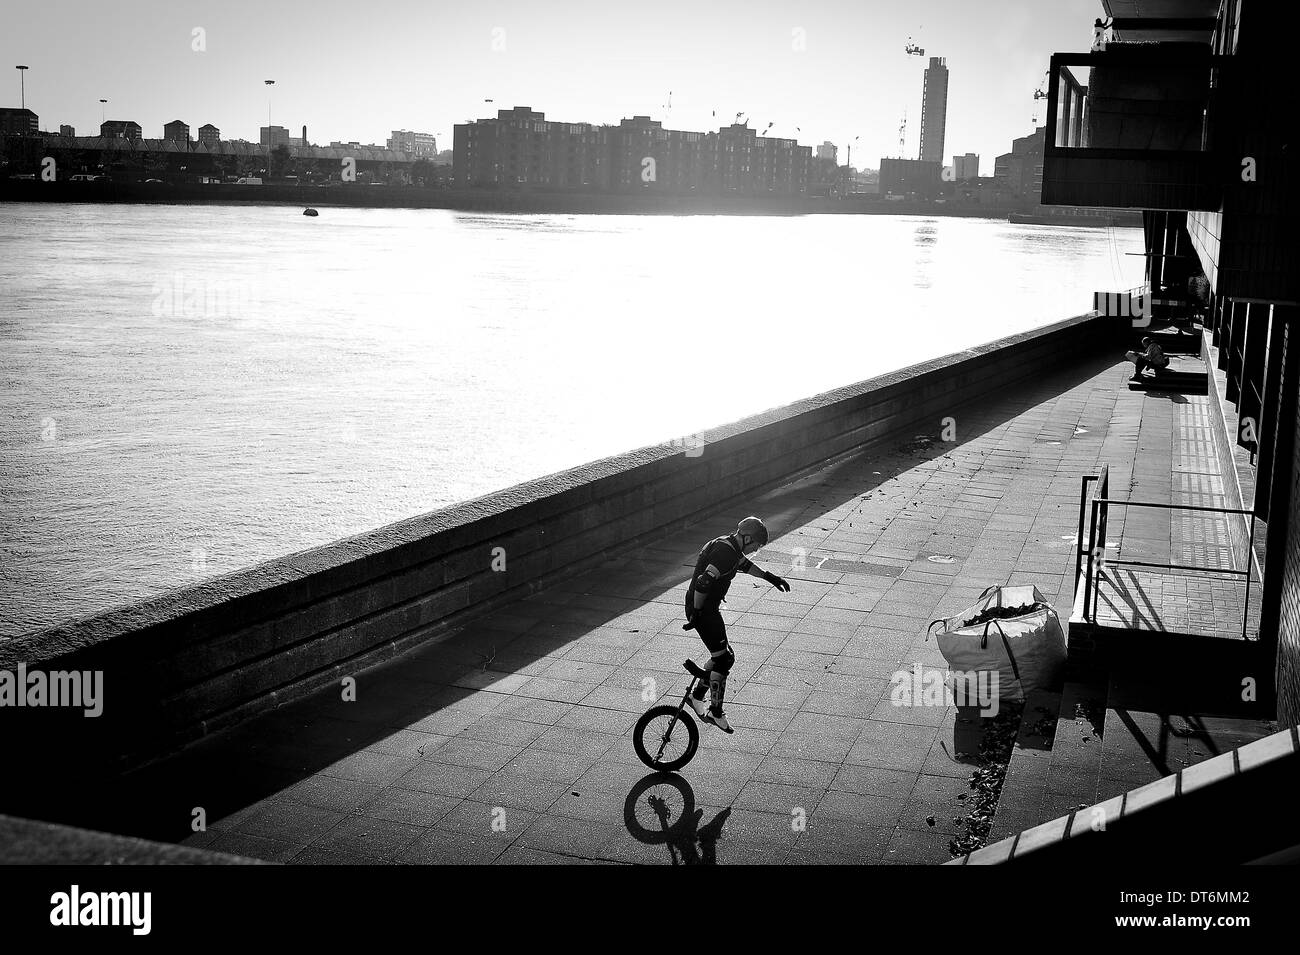 Unicyclist, Silhouetted next to the River Thames London. Stock Photo